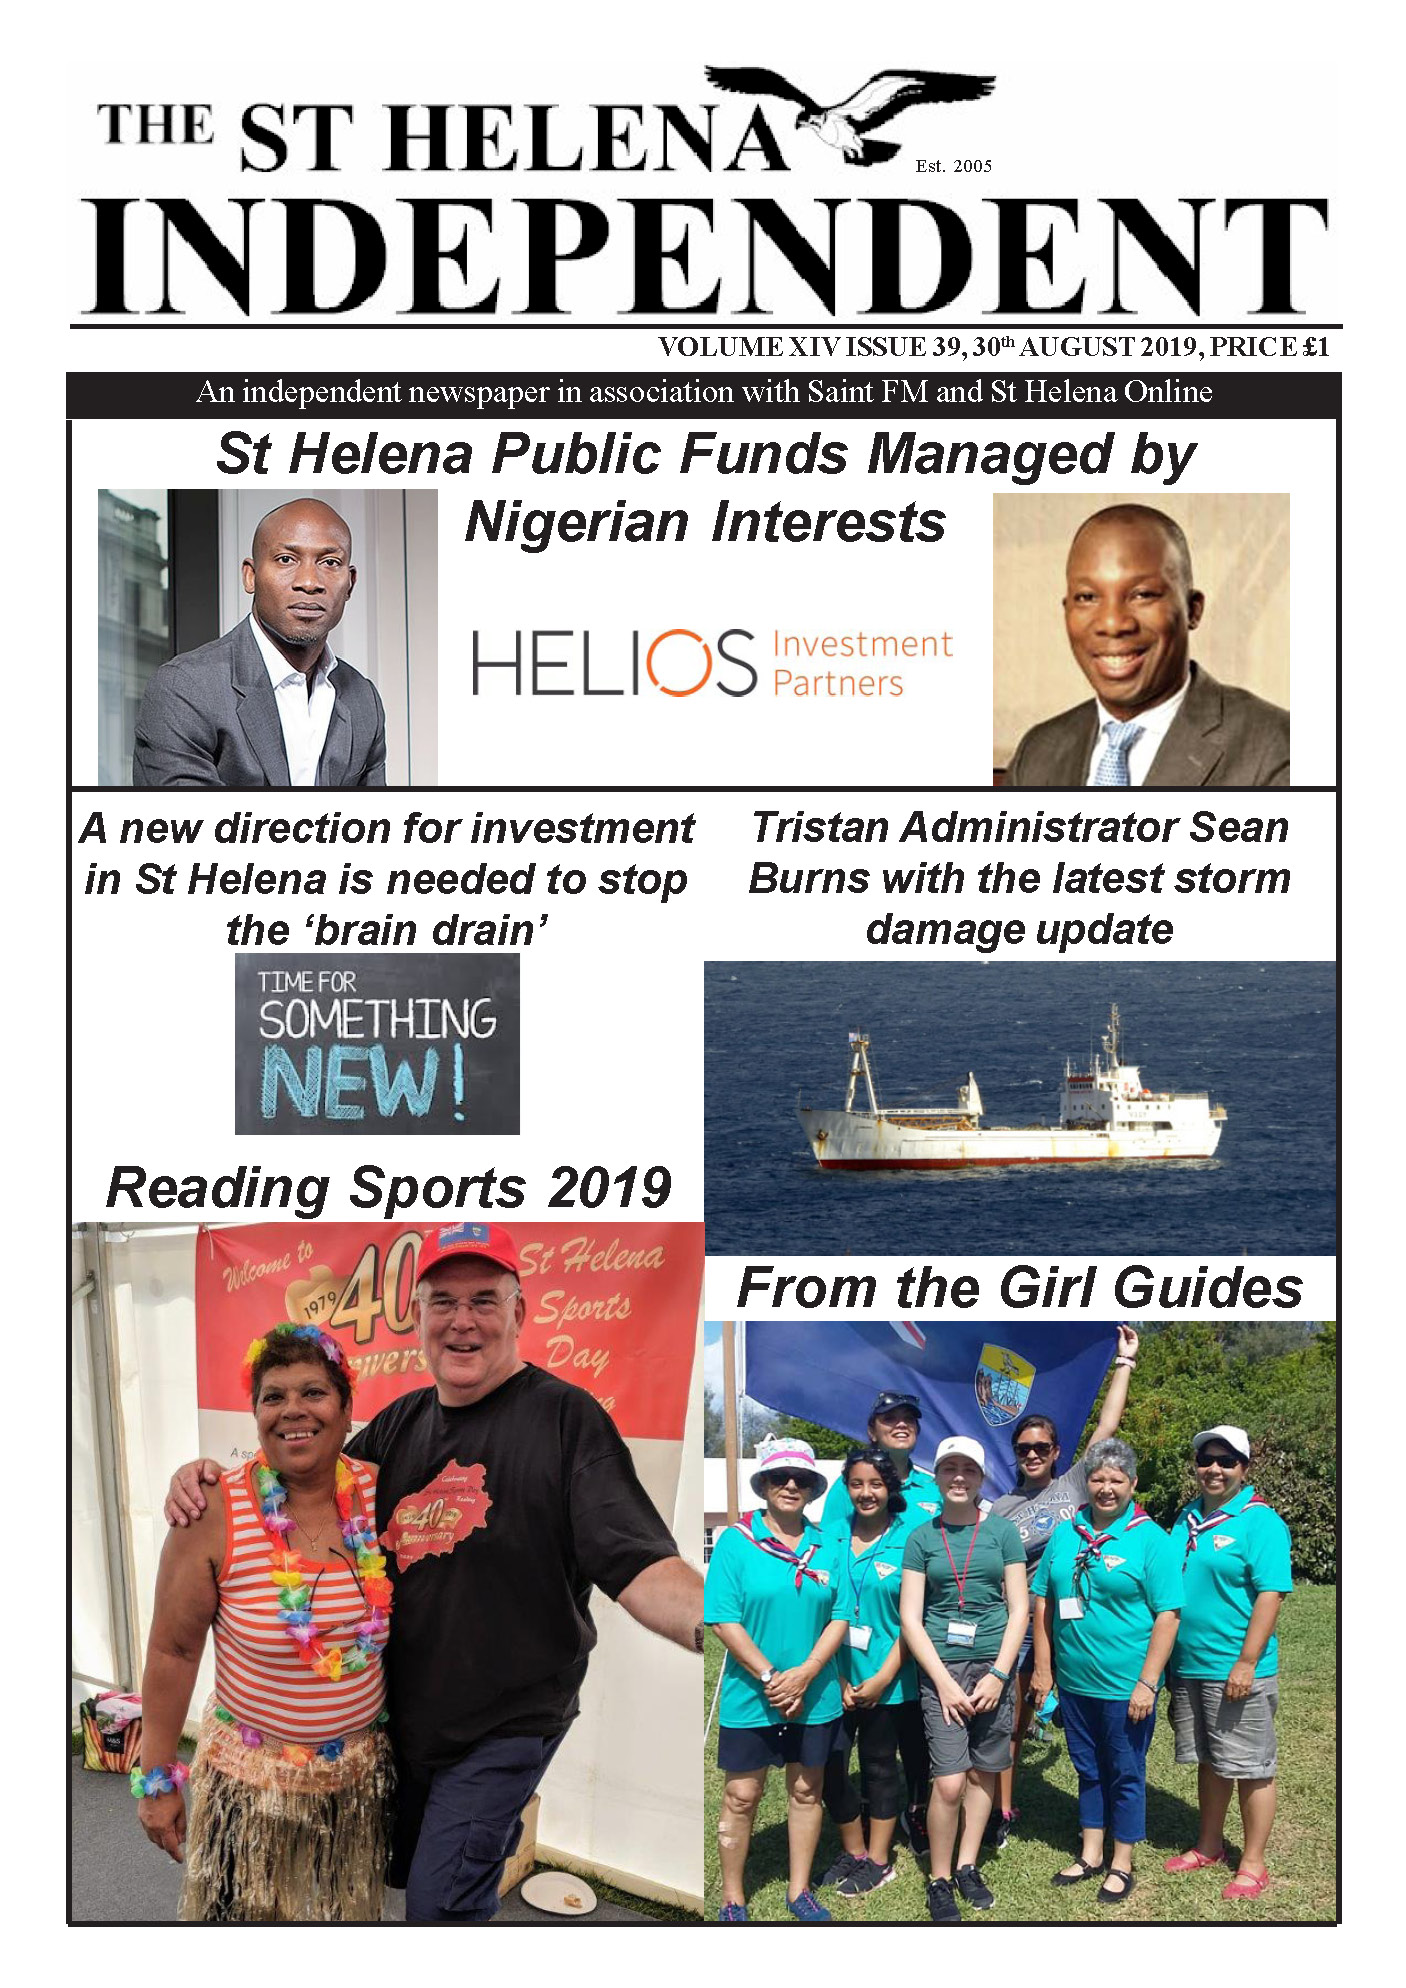 St Helena Independent 20190830 p1